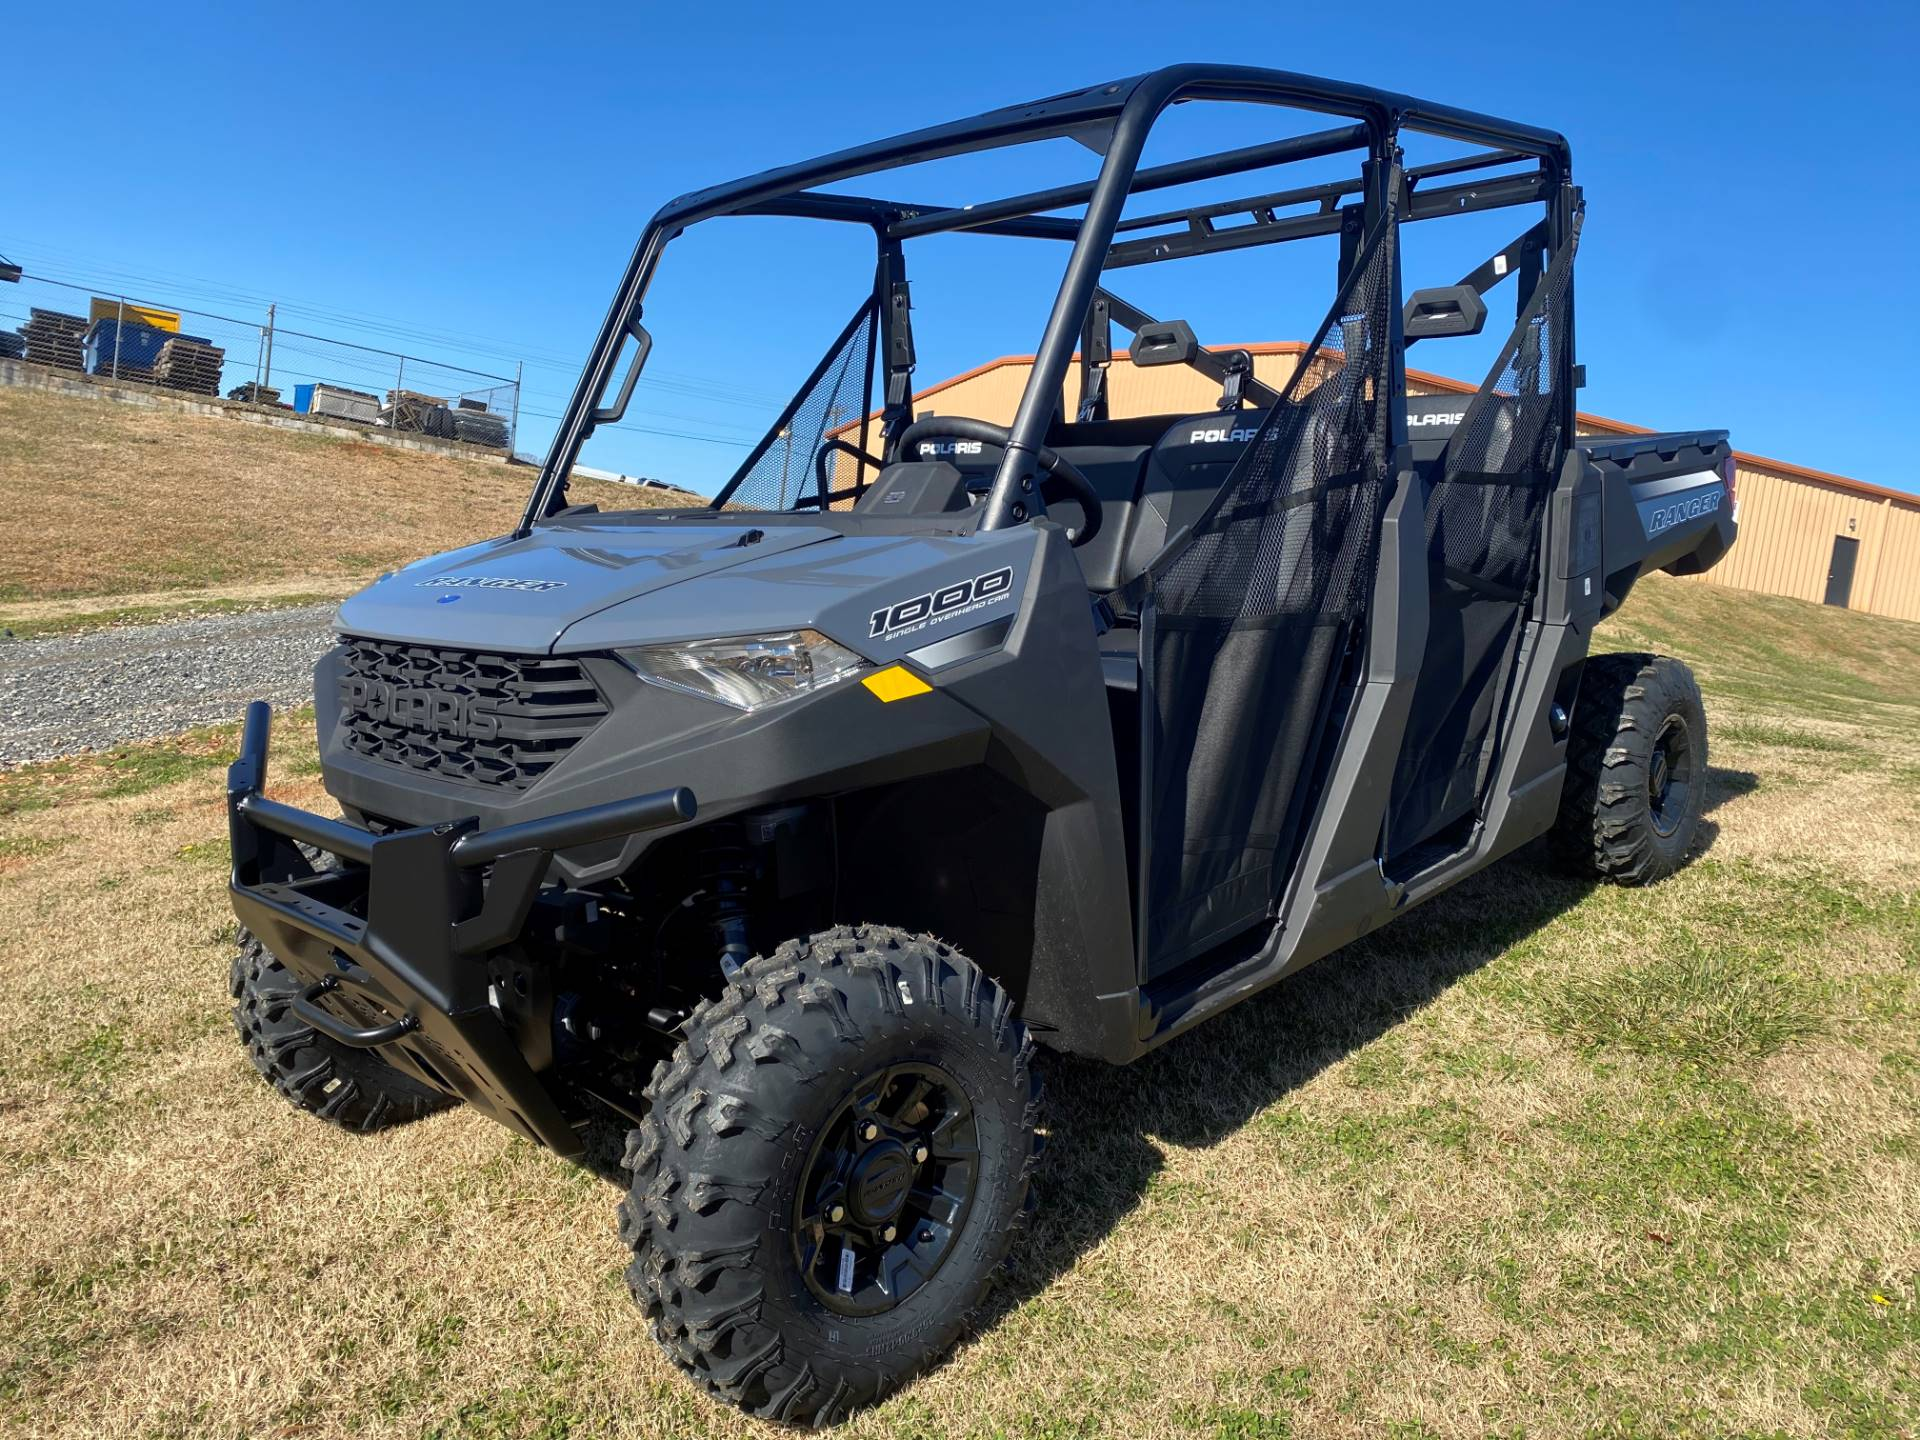 2021 Polaris Ranger Crew 1000 Premium in Greer, South Carolina - Photo 3